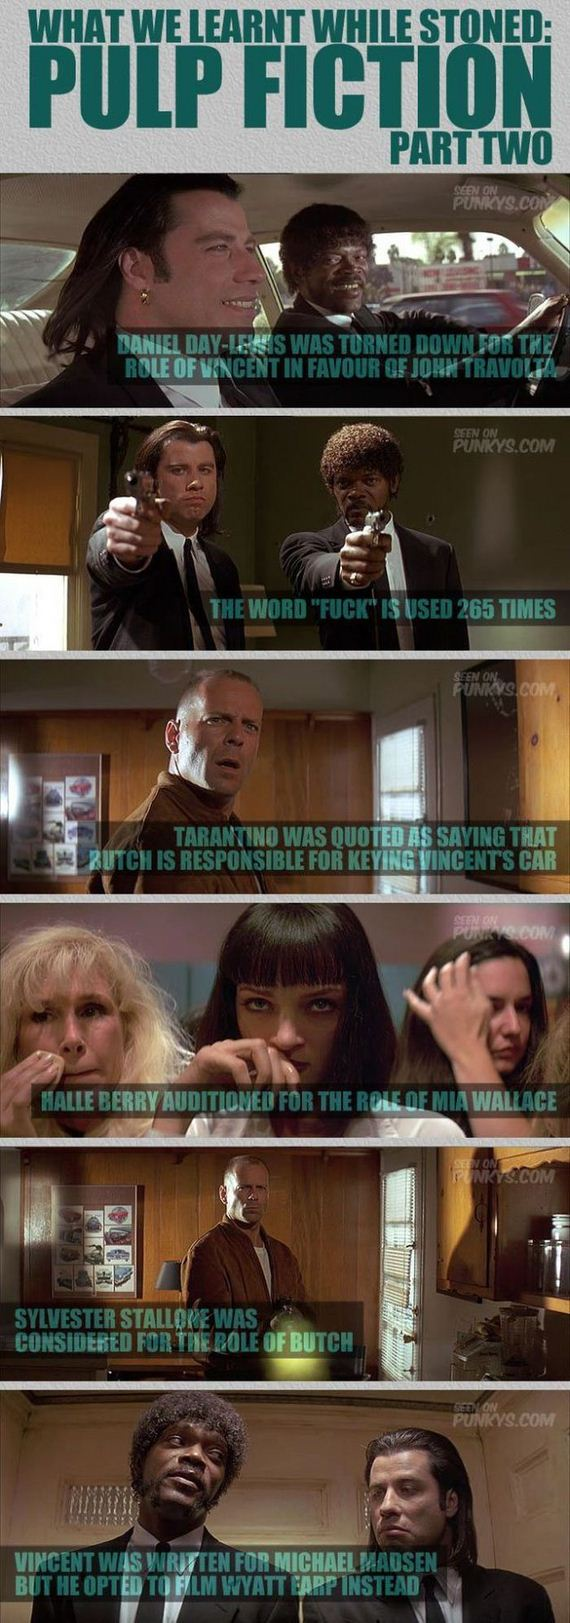 a_few_facts_you_probably_didnt_know_about_pulp_fiction